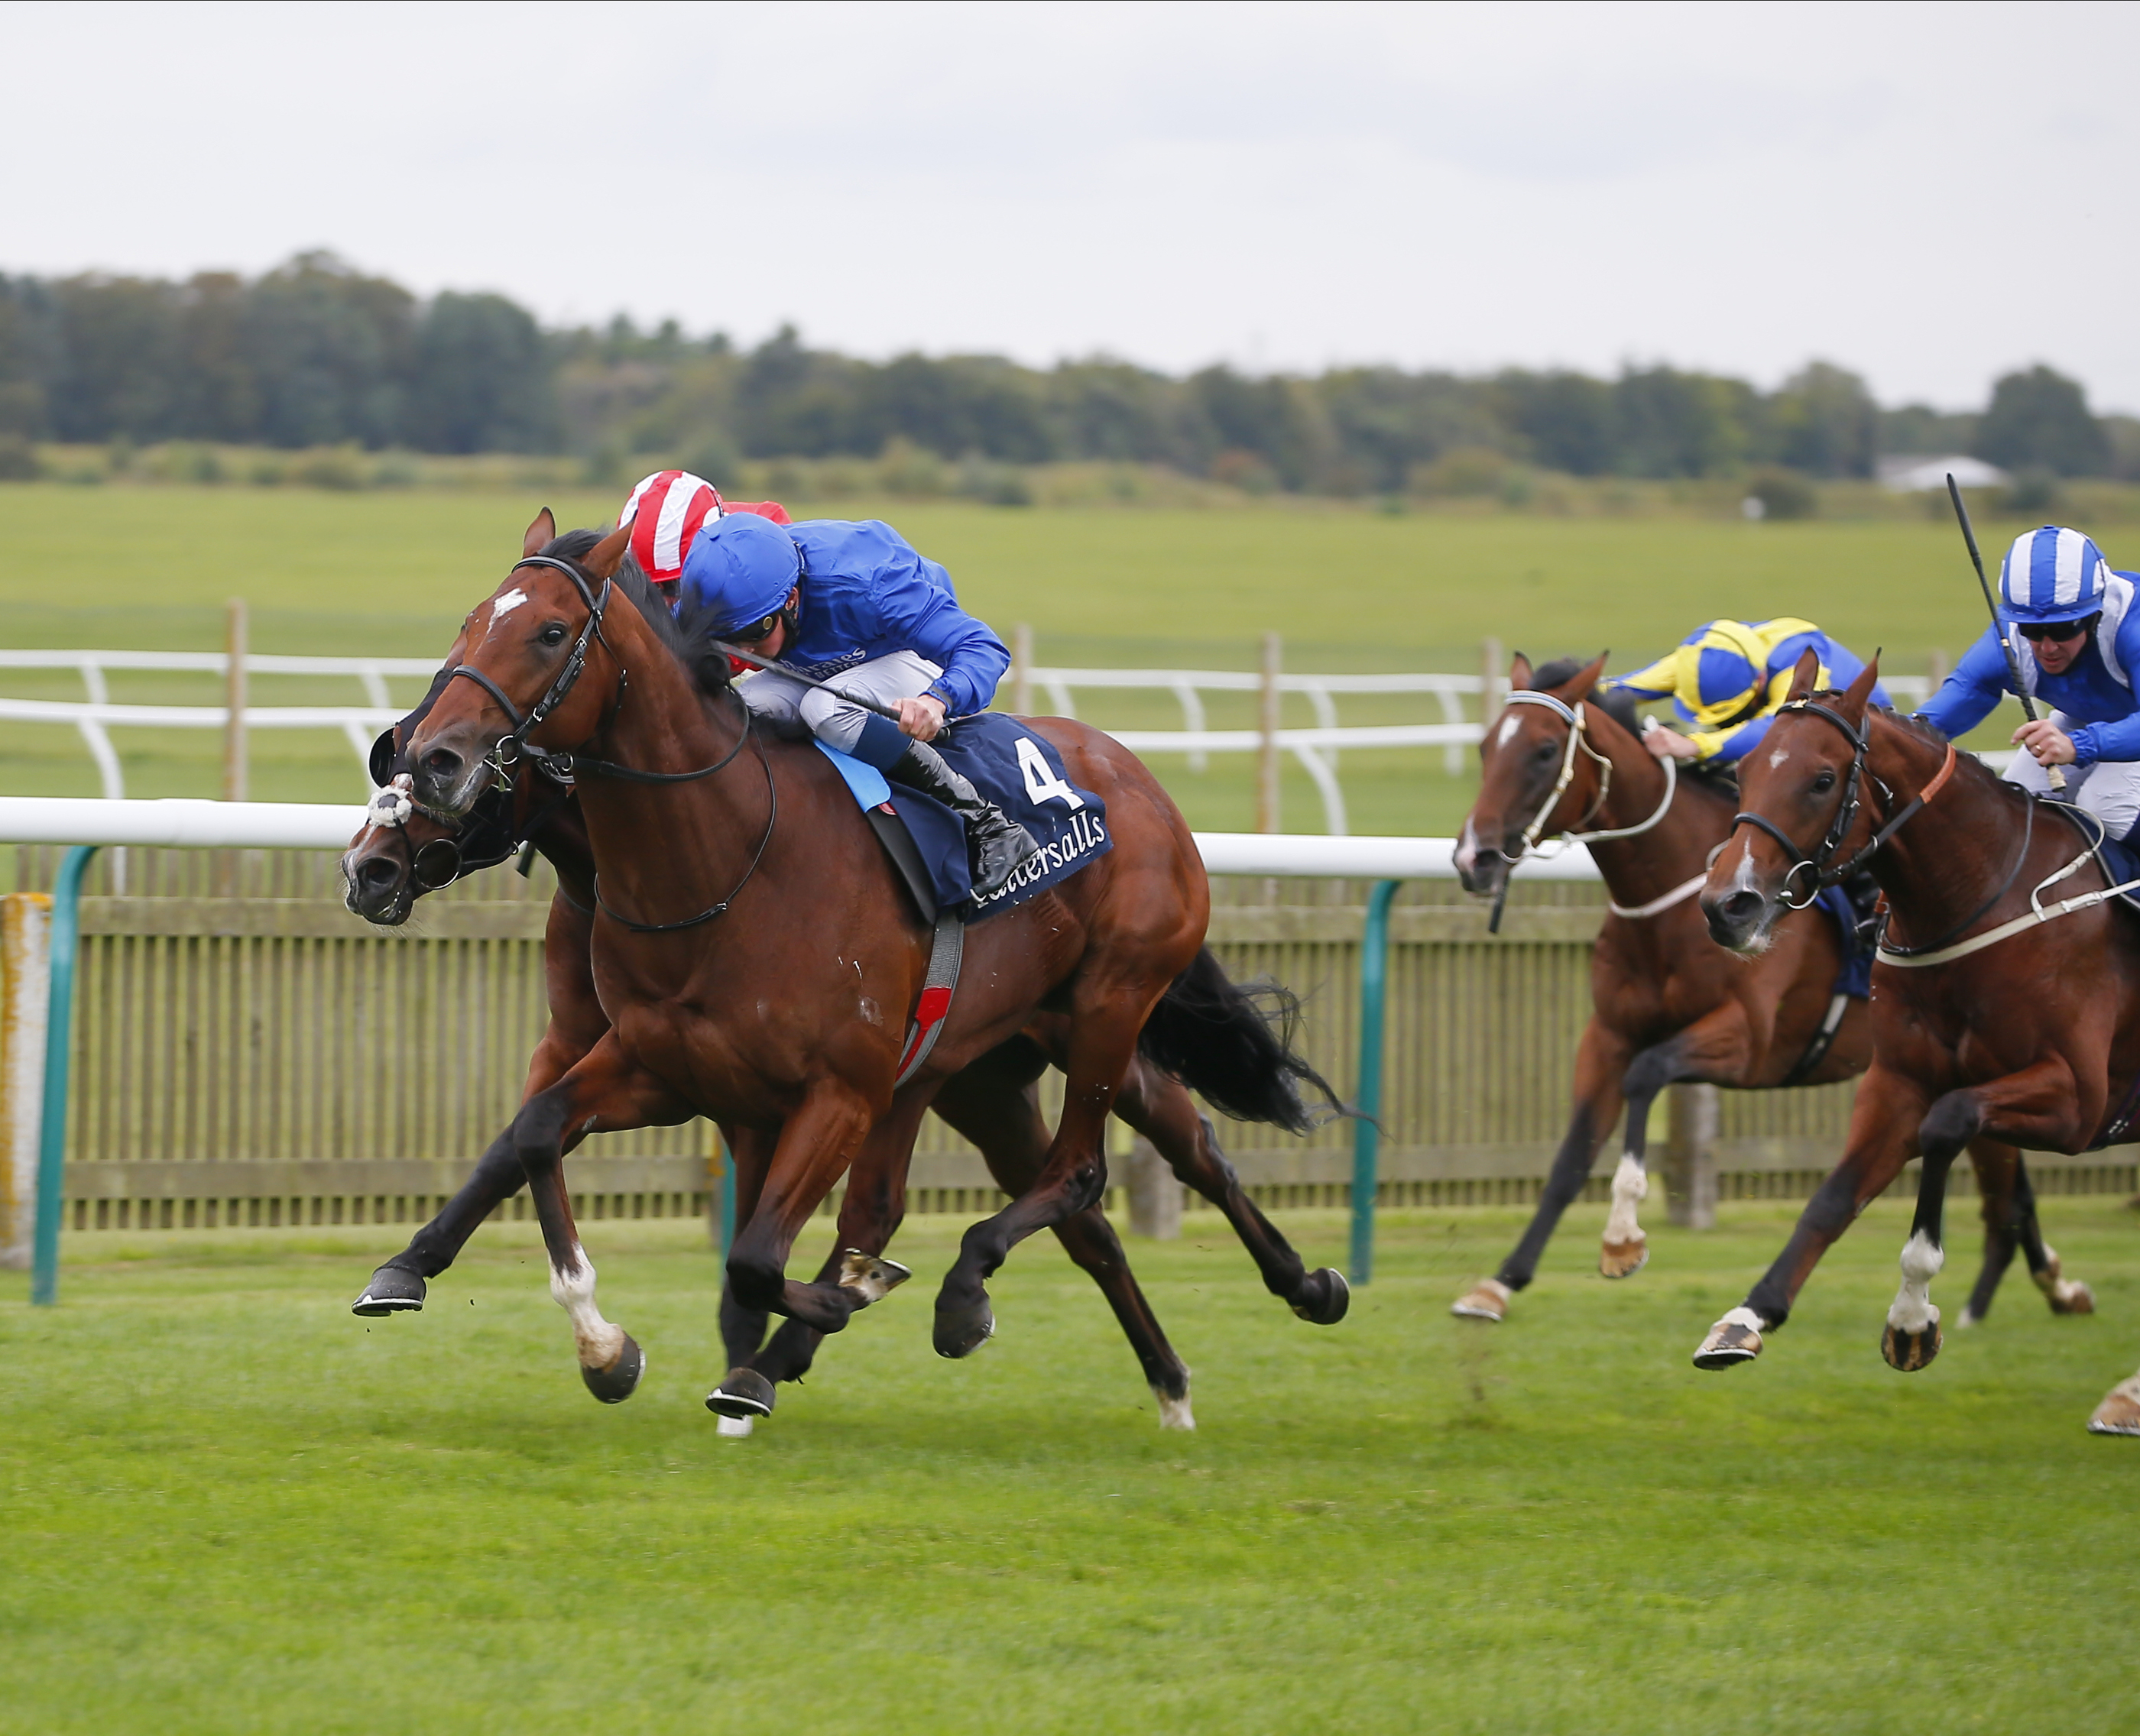 Critérium International (Gr1) : un Godolphin et un O'Brien pour Normandy Bridge **